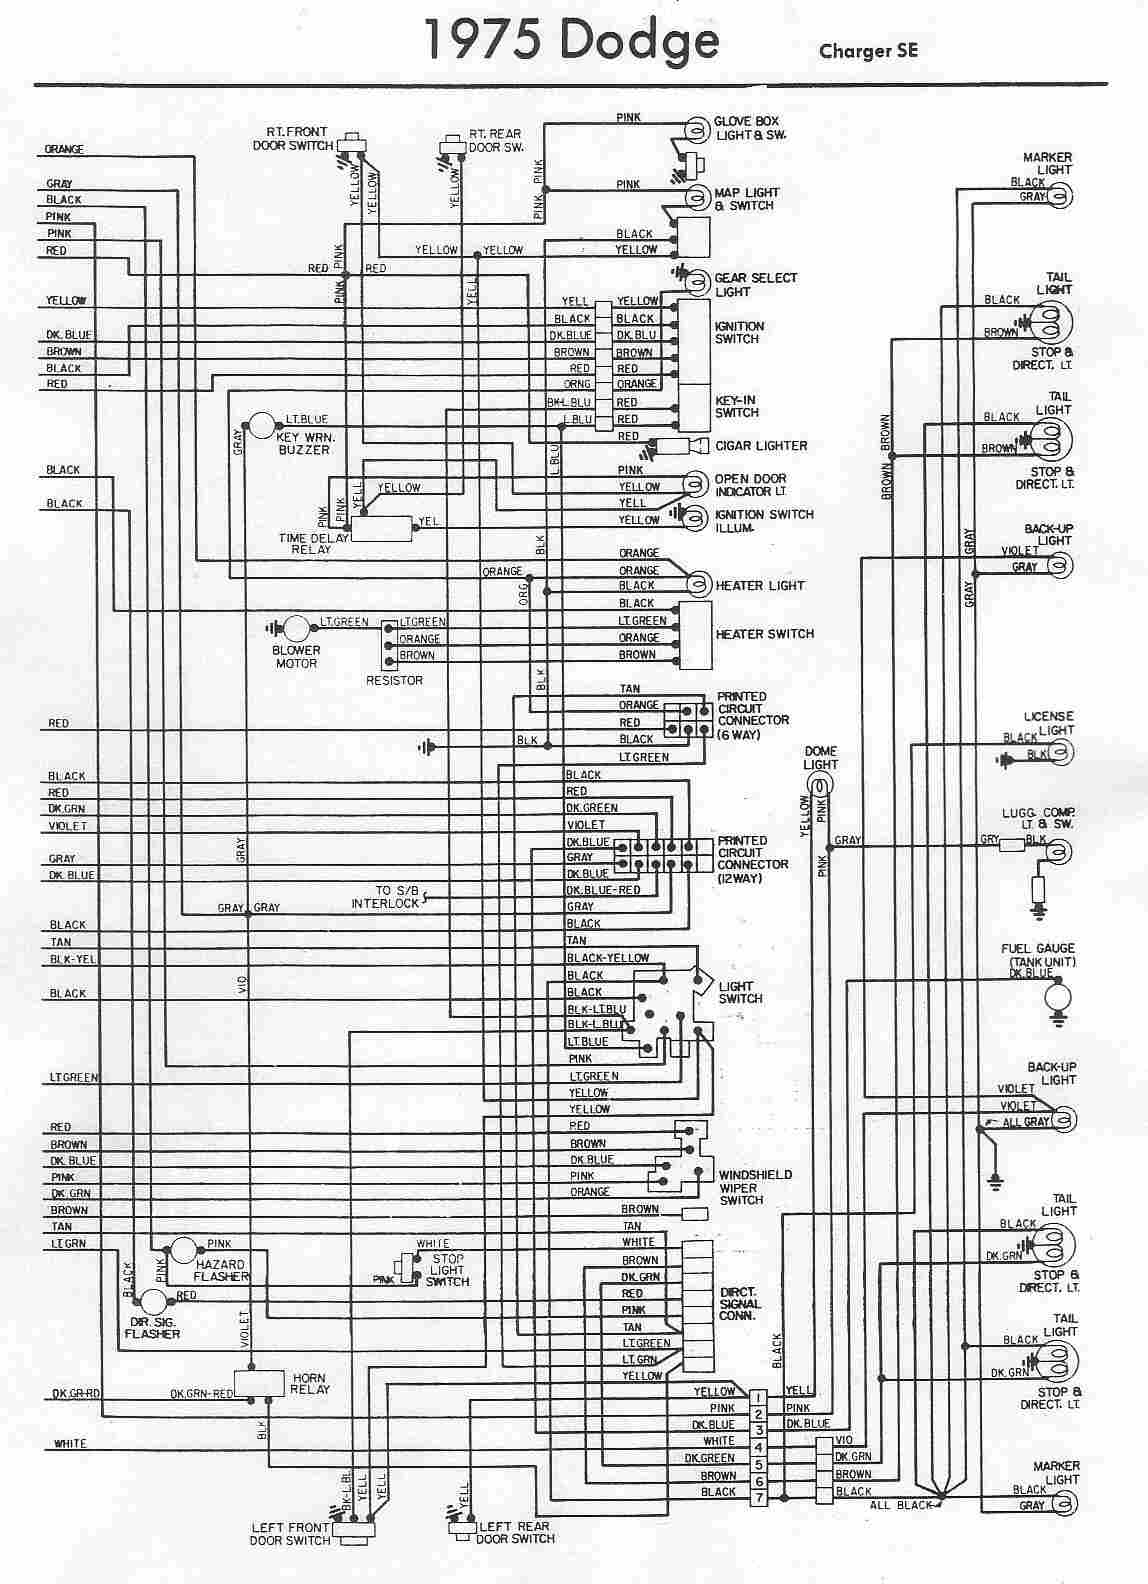 electrical diagram 1978 dodge power wagon wiring diagrams lol1978 dodge power wagon wiring diagram wiring diagram [ 1148 x 1584 Pixel ]